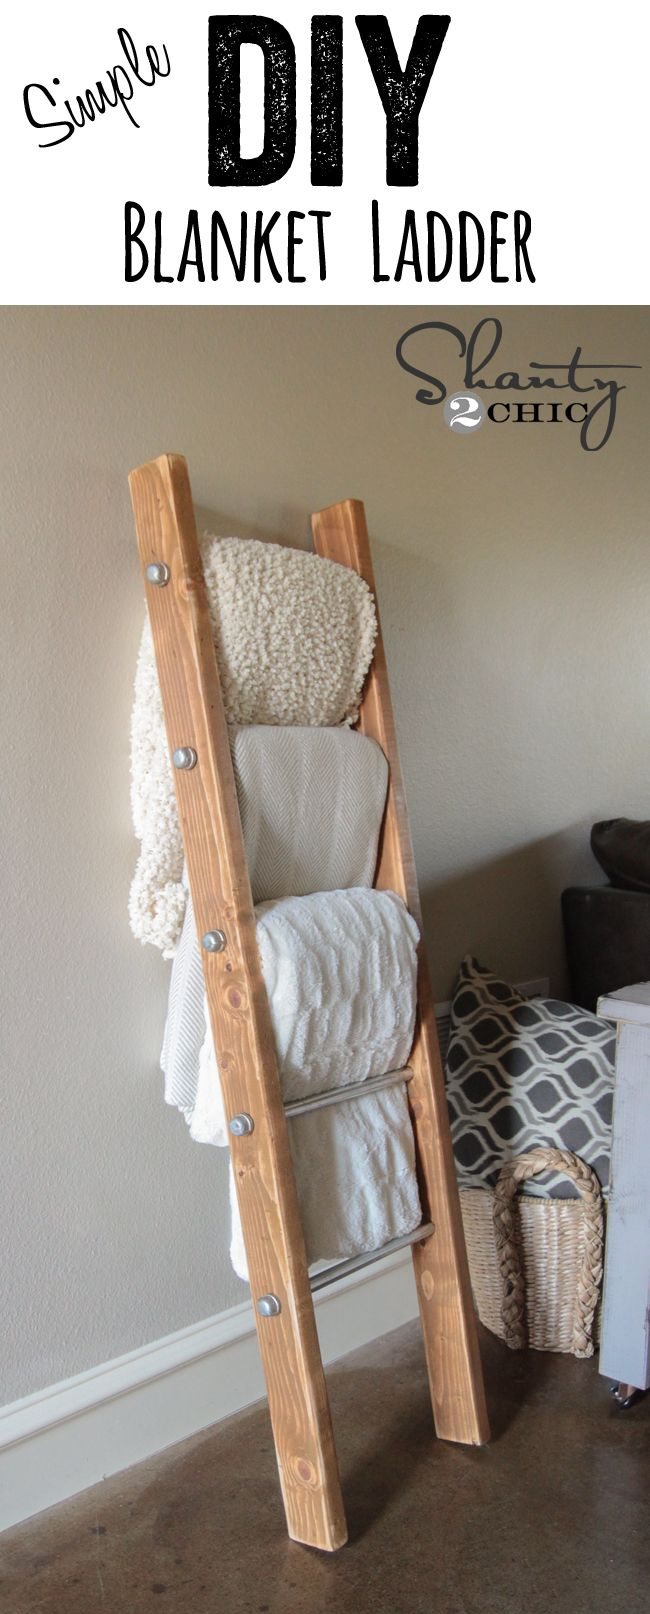 DIY Wood and Metal Pipe Blanket Ladder. Seriously SO simple and cute!